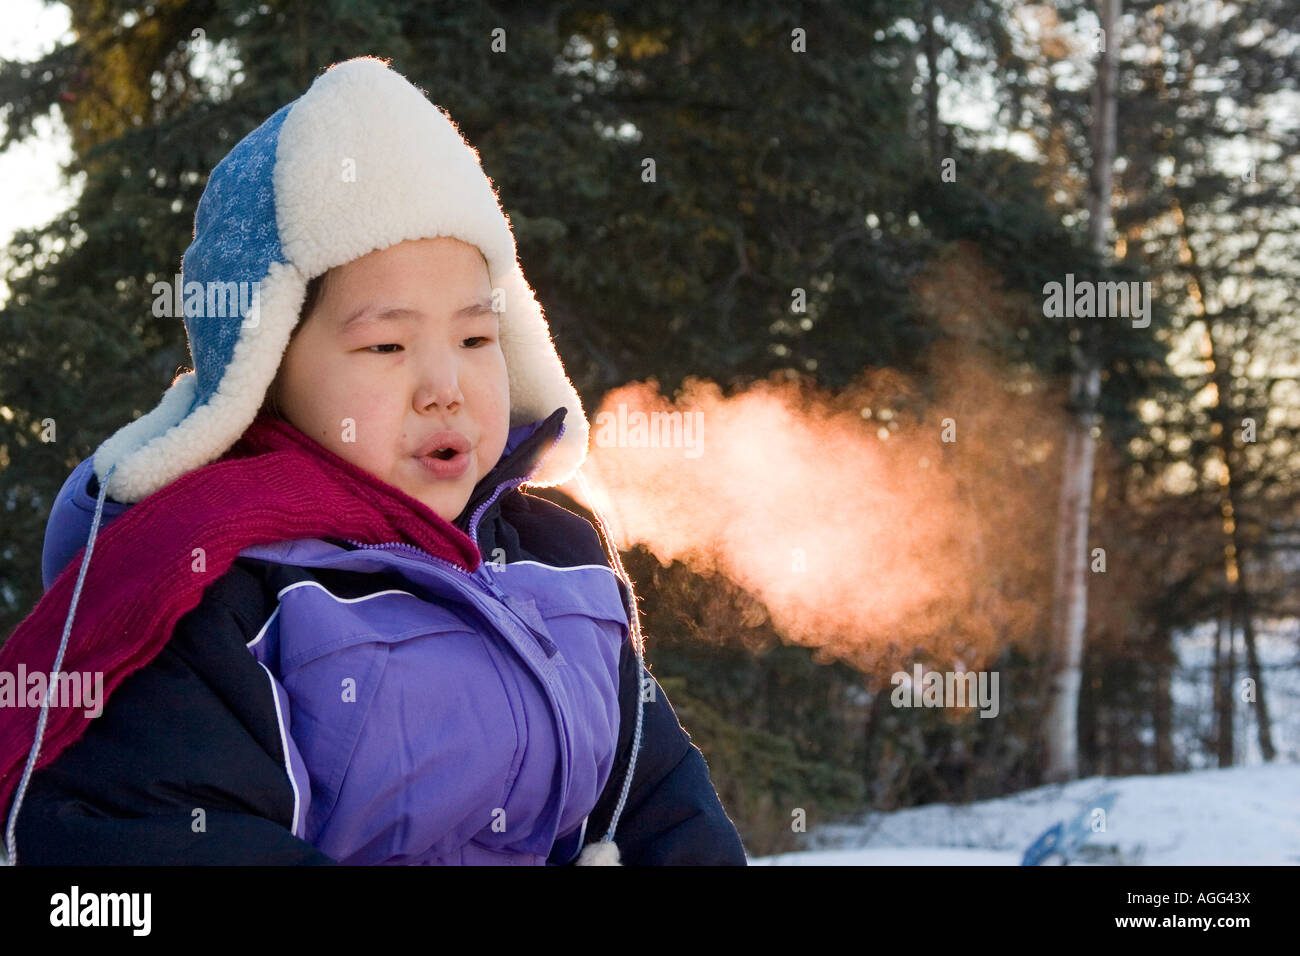 Inuit Eskimo Girl on Chilly Morning Breath Visible AK Winter - Stock Image